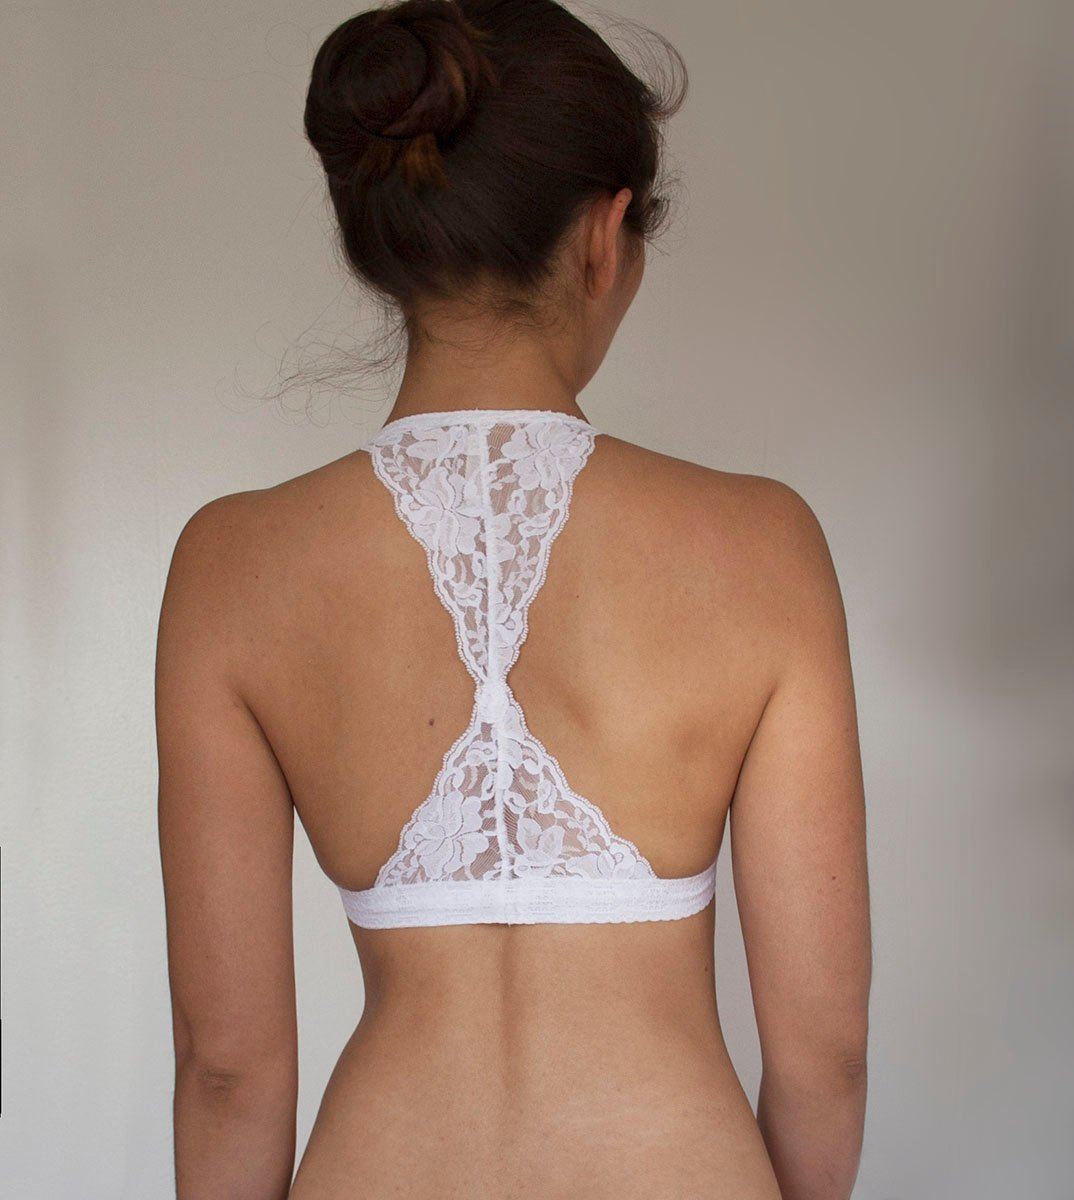 White Lace Bralette. Triangle Back Halter Wireless Bra Top. Bridal Lingerie